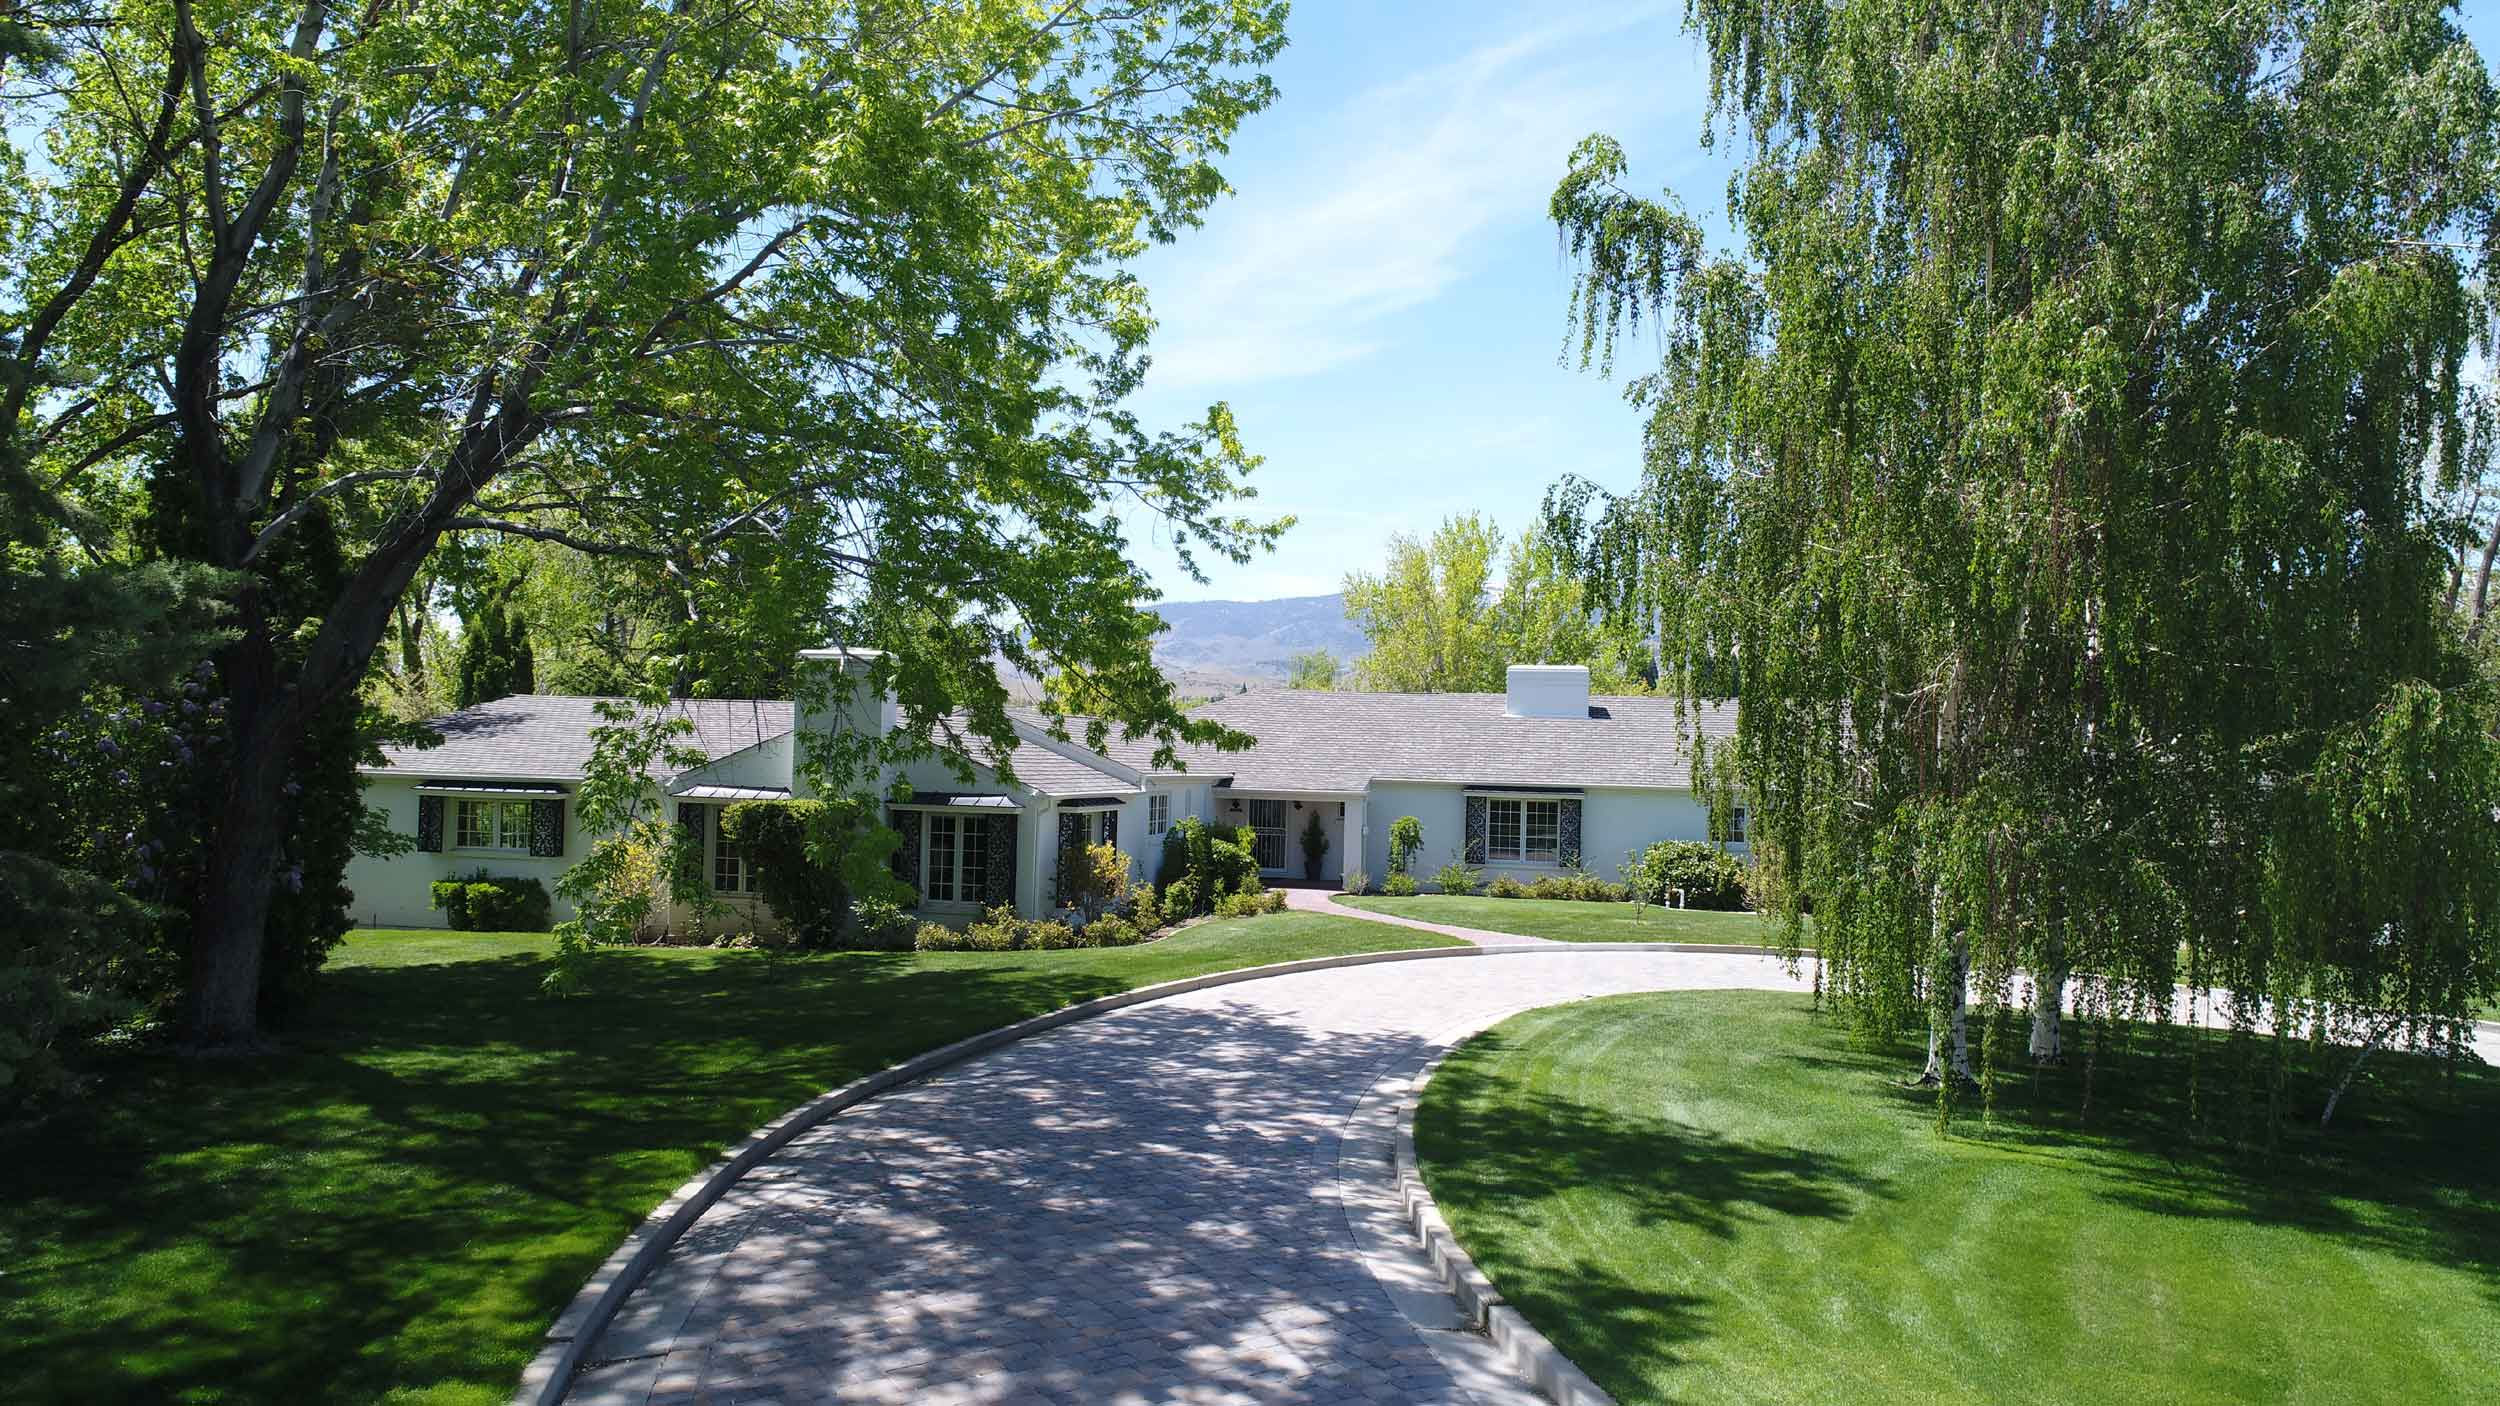 This Mid-Century Modern estate in Reno, Nevada, hosted Clark Gable, Marilyn Monroe, and Montgomery Clift during the production of the 1961 Hollywood film <em>The Misfits</em>.